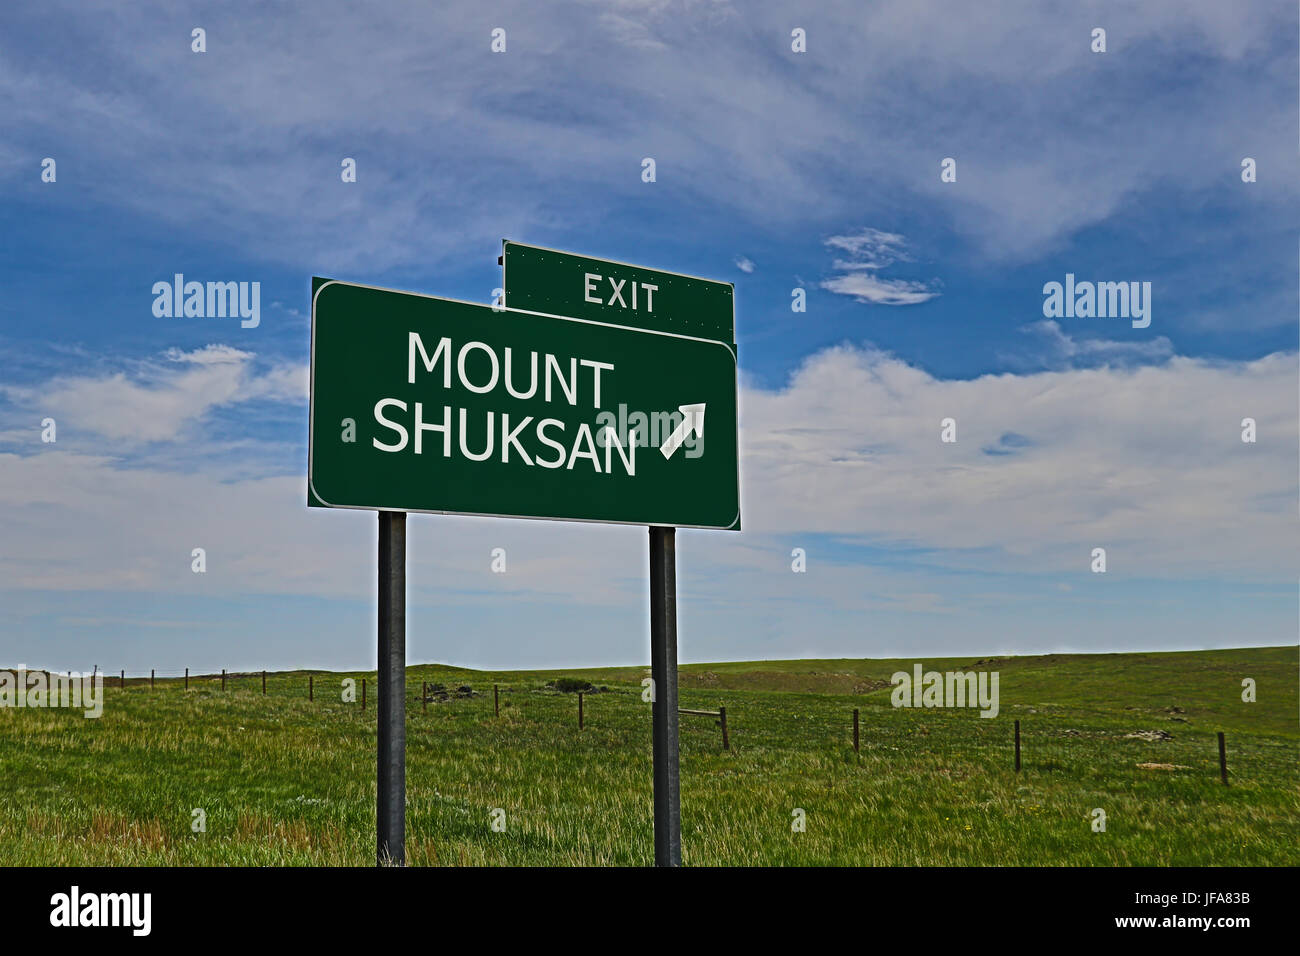 US Highway Exit Sign for Mount Skuksan - Stock Image